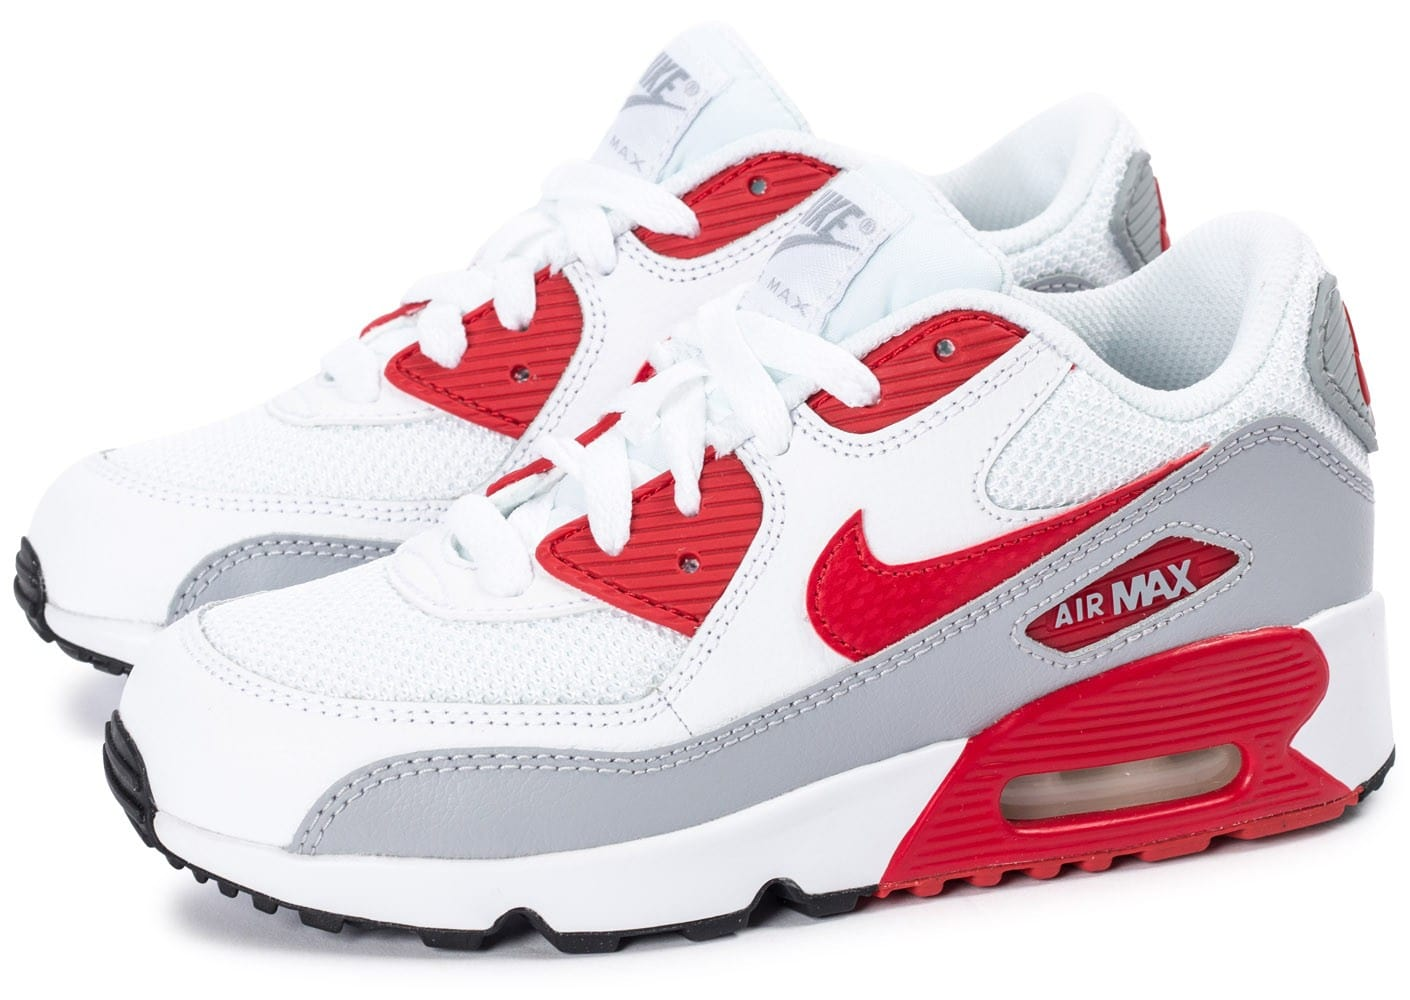 nike air max 90 mesh enfant blanche et rouge chaussures chaussures chausport. Black Bedroom Furniture Sets. Home Design Ideas